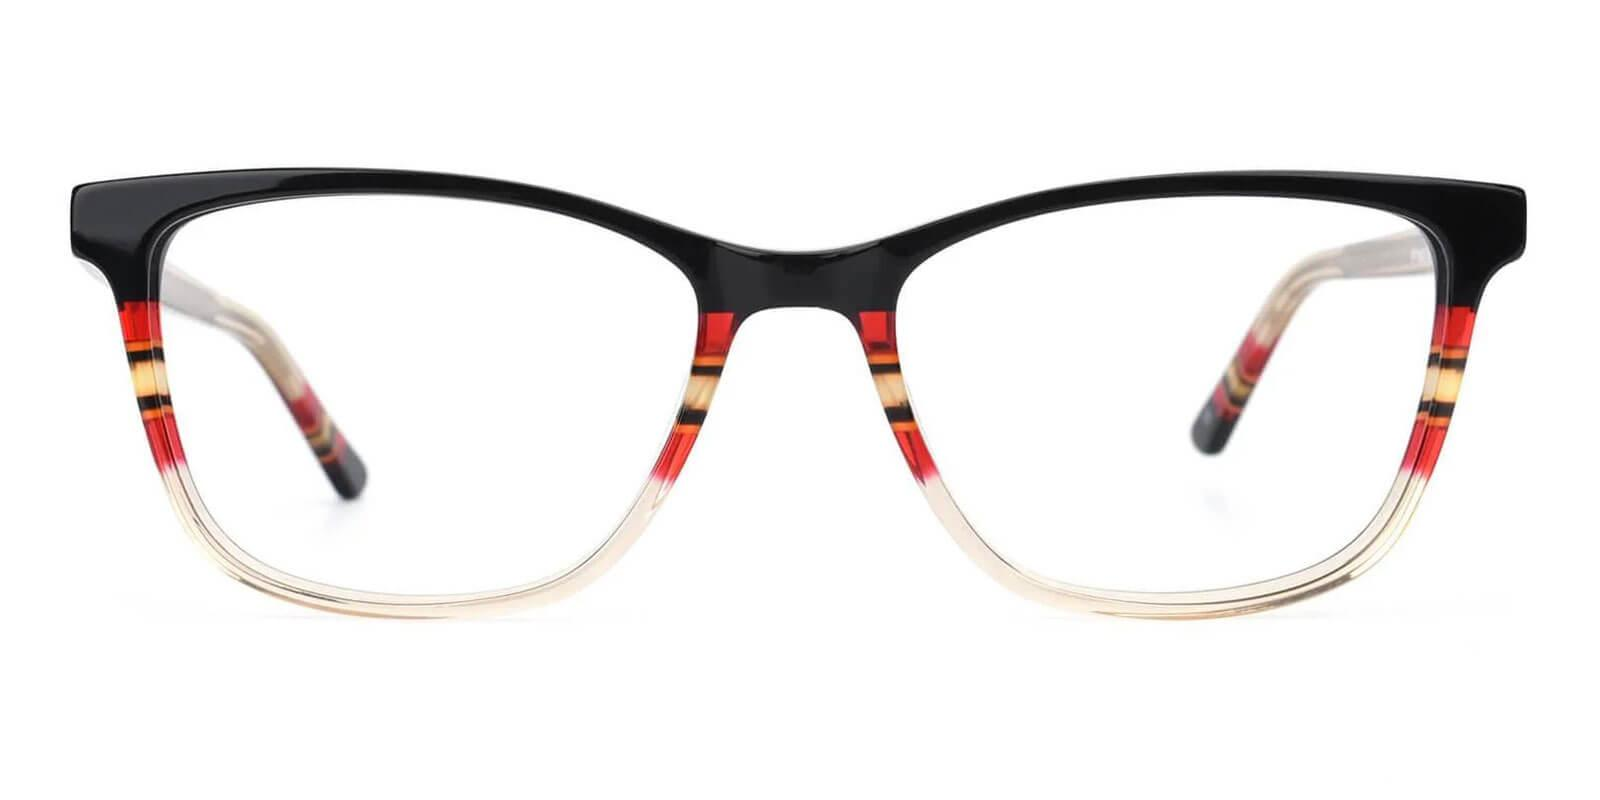 Wolfgang Yellow Acetate Eyeglasses , UniversalBridgeFit Frames from ABBE Glasses